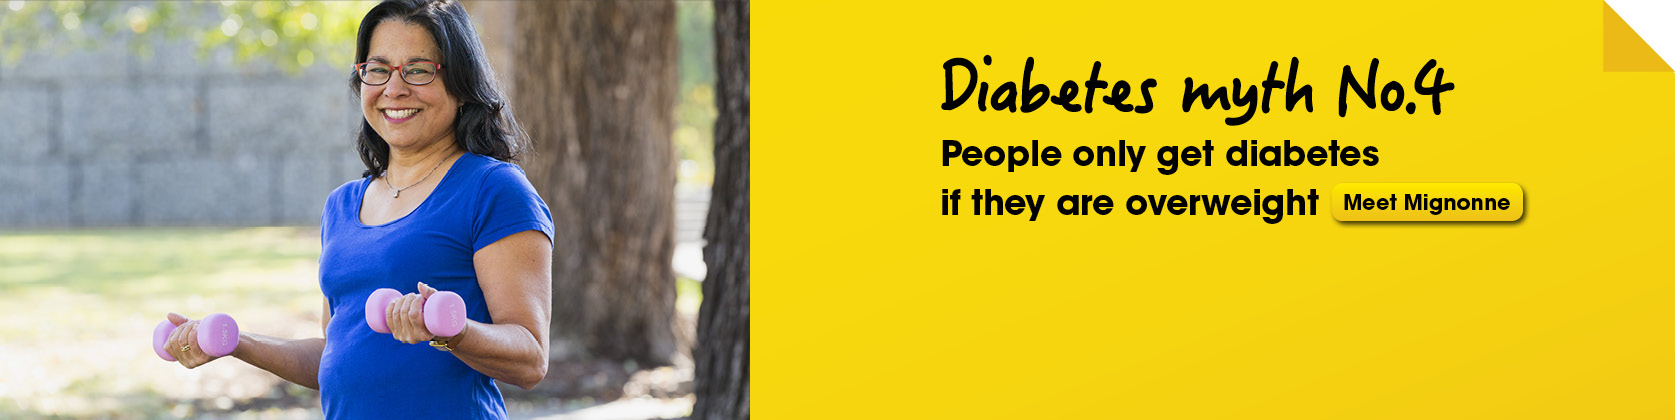 Bust a diabetes myth 4